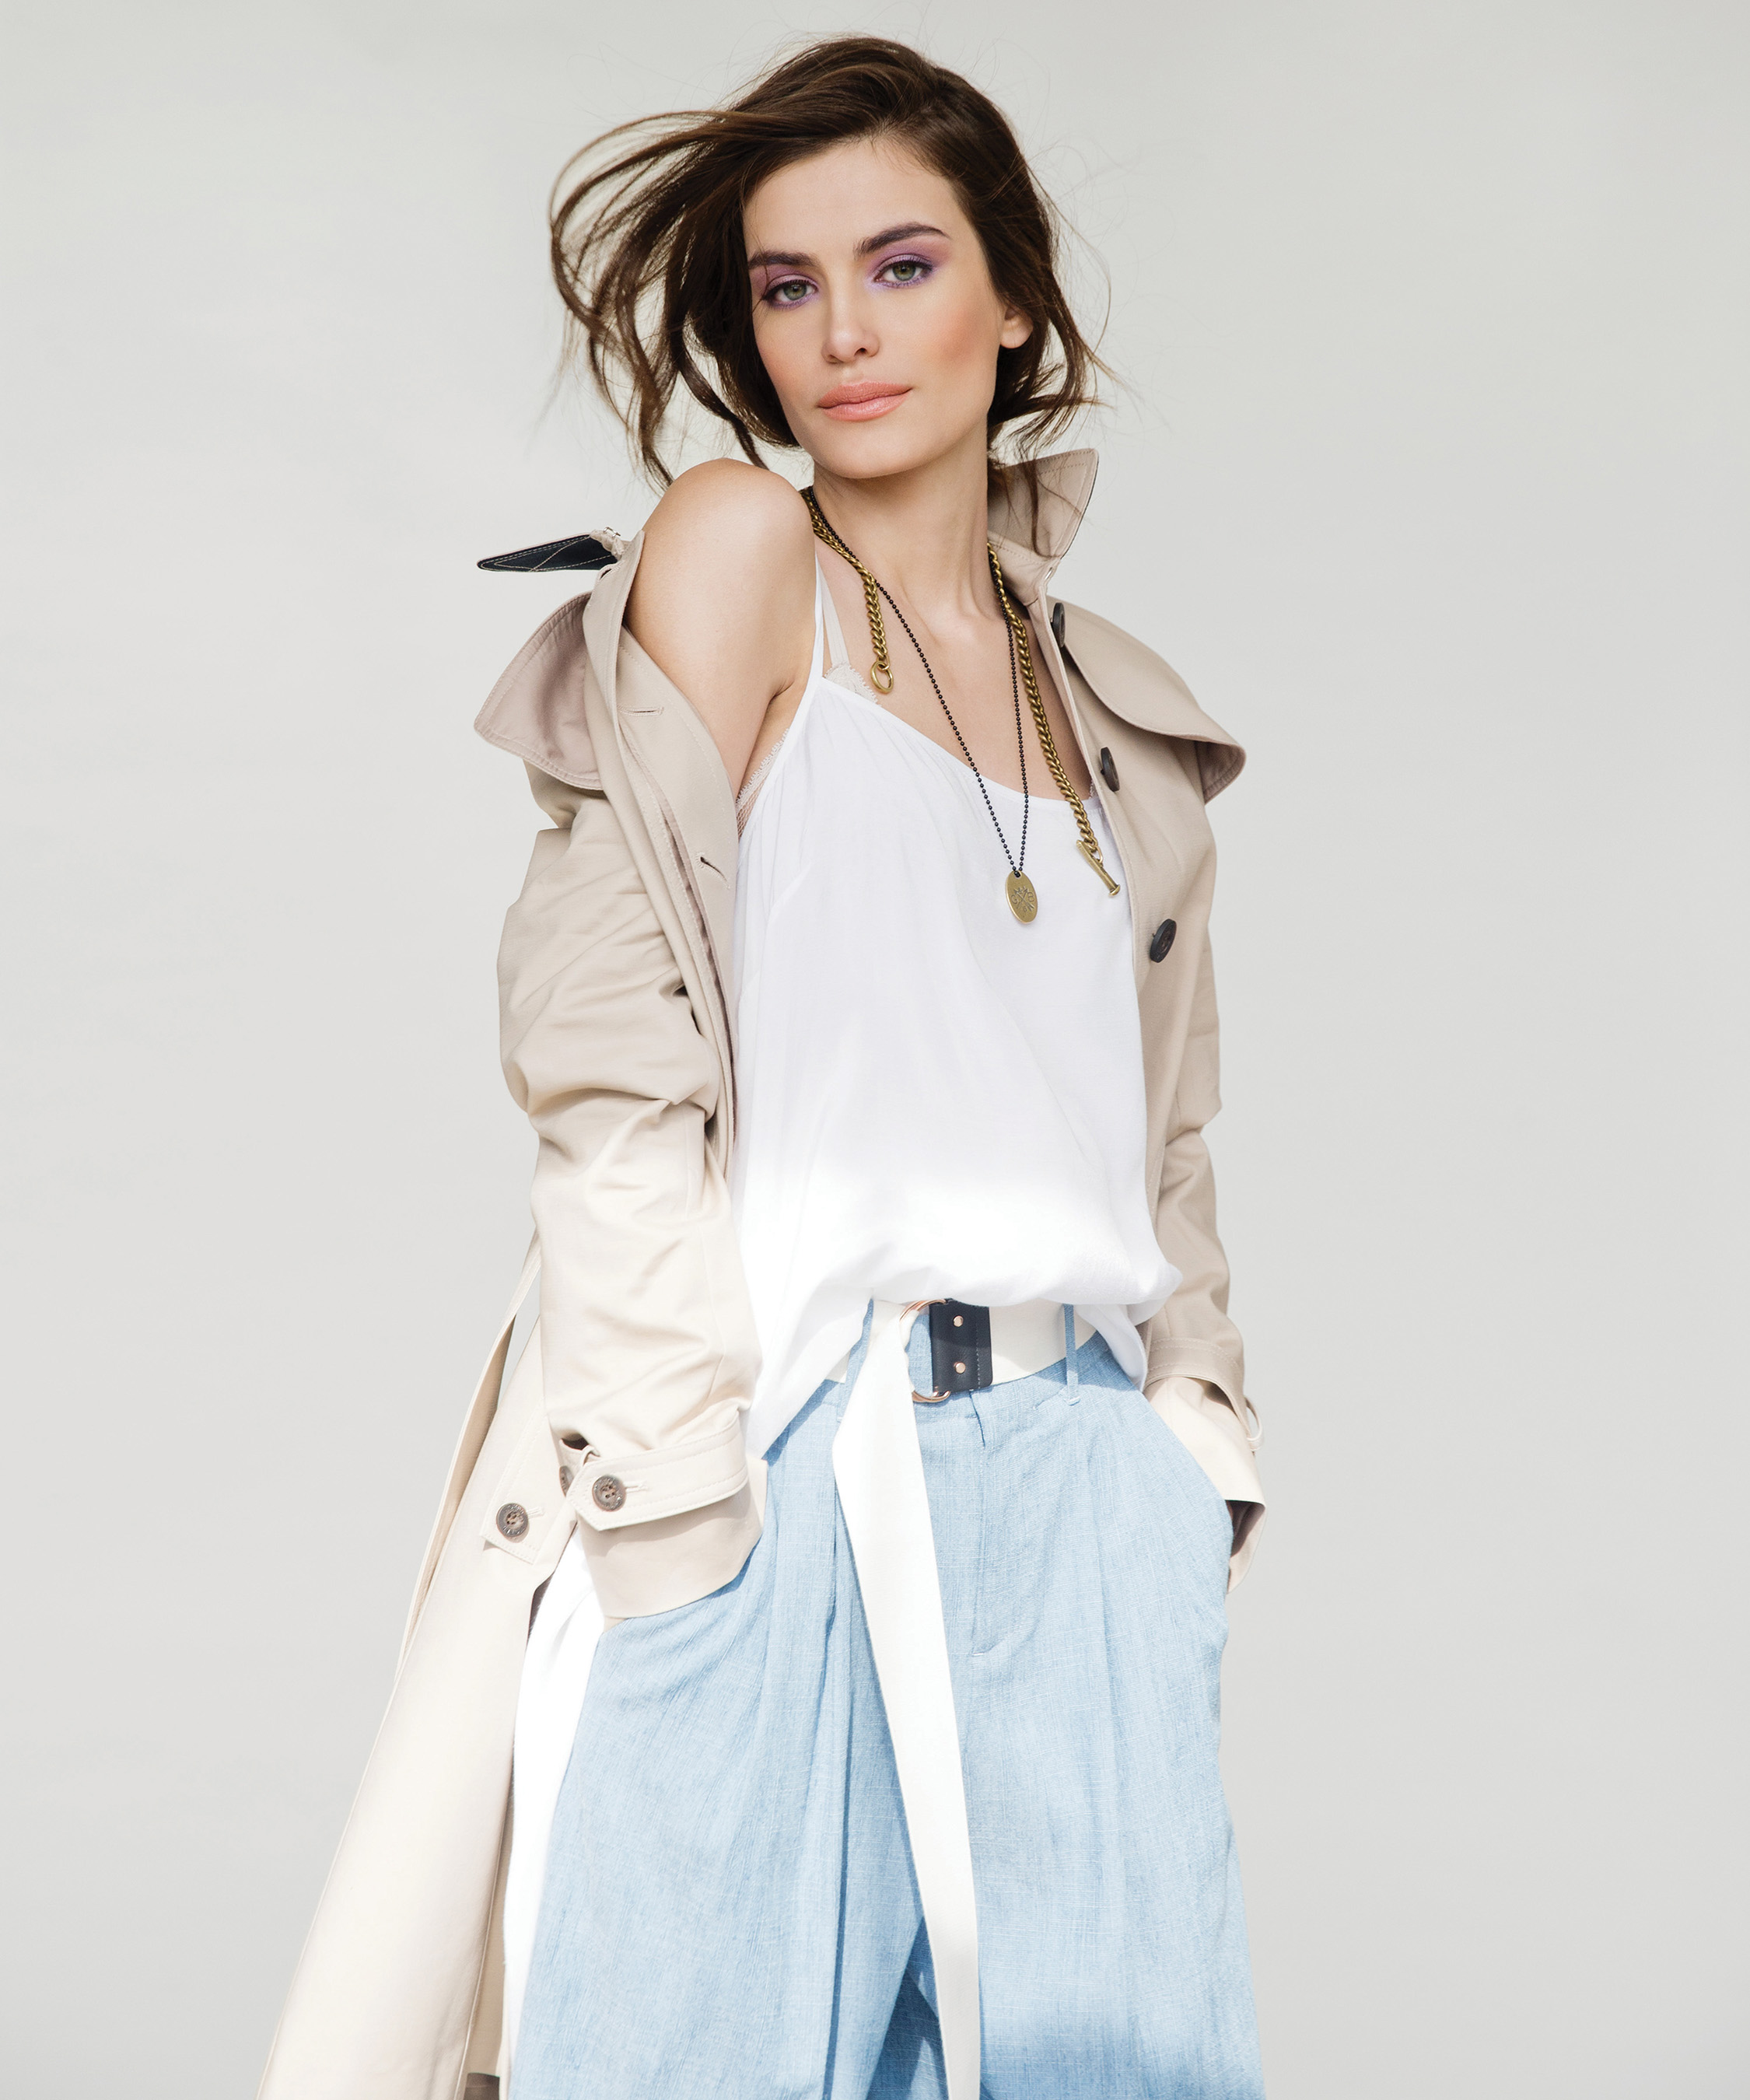 Spring-Awakening-Venice-Douglas-Mott-Kim-Chadnler-Chan-Lulu-dress-Alicfe-and-Olivia-pants-Bllomingdale-Aventura-Mall-Hobbs-trench-coat-DKNY-Nordstrom-Giles-Brother-necklace-Tini-belt-Saks-Fifth-Avenue-Bal-Harbour